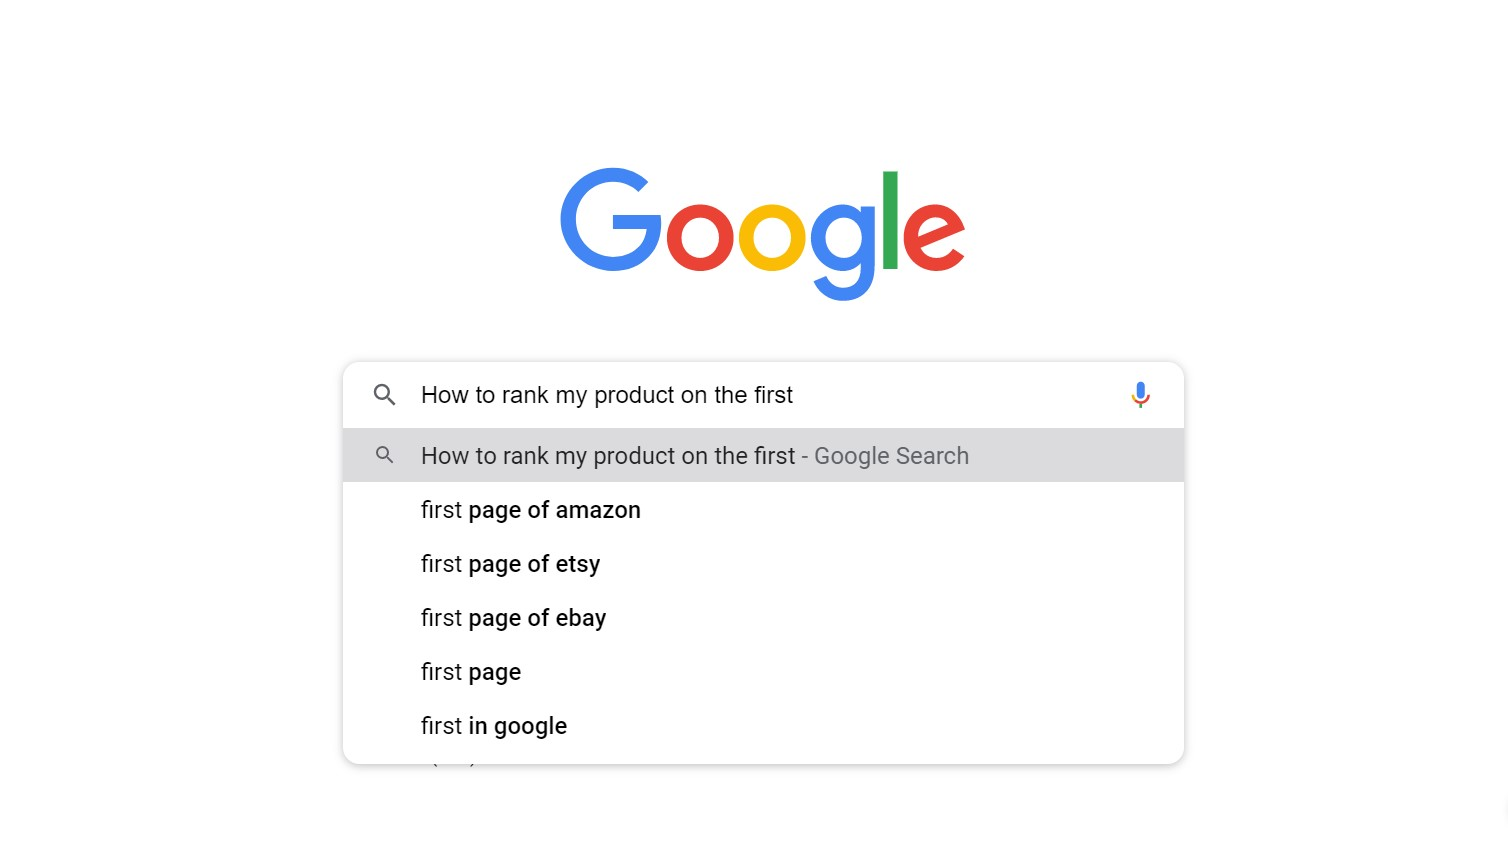 how to rank my product on the first page of google